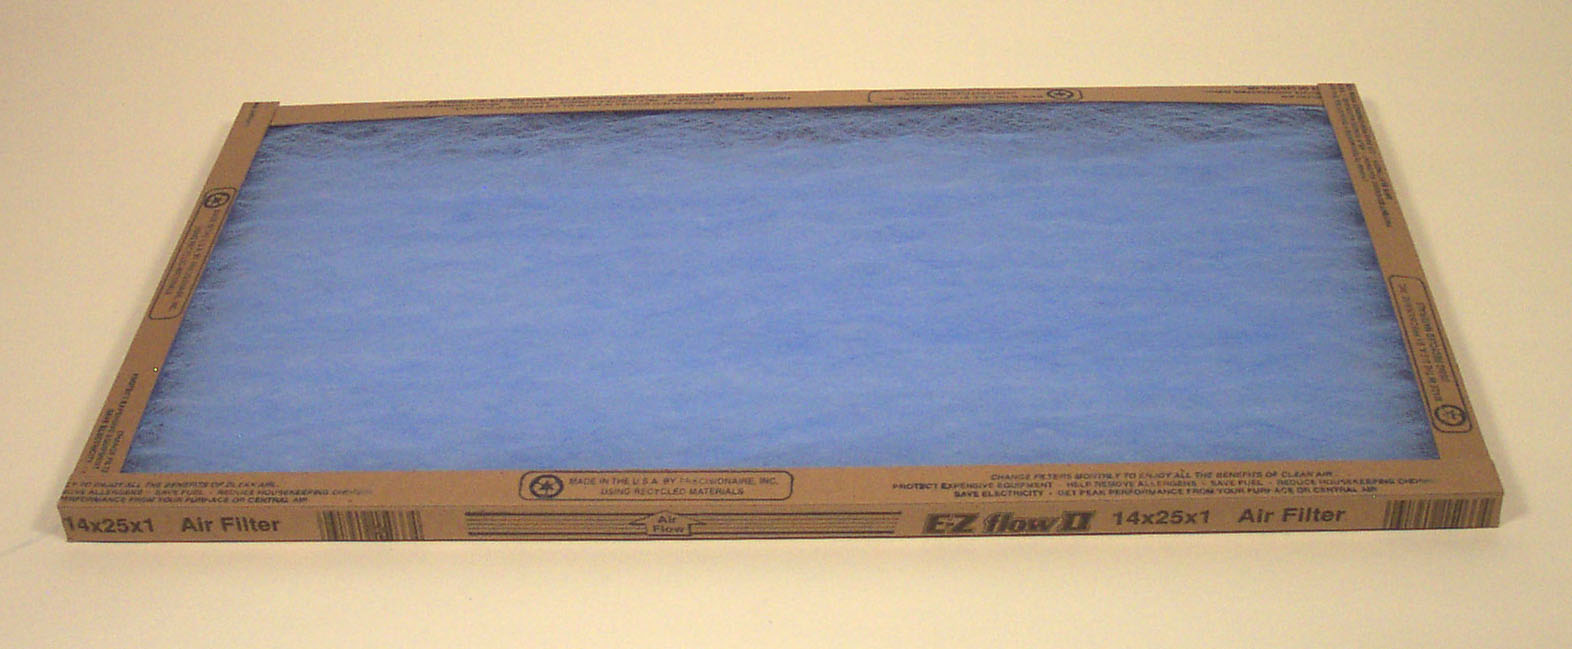 ***INVENTORY CLOSEOUT** Fiberglass Air Filter 14x25x1  (Case of 6) SHIPPING TO U.S. $1.99